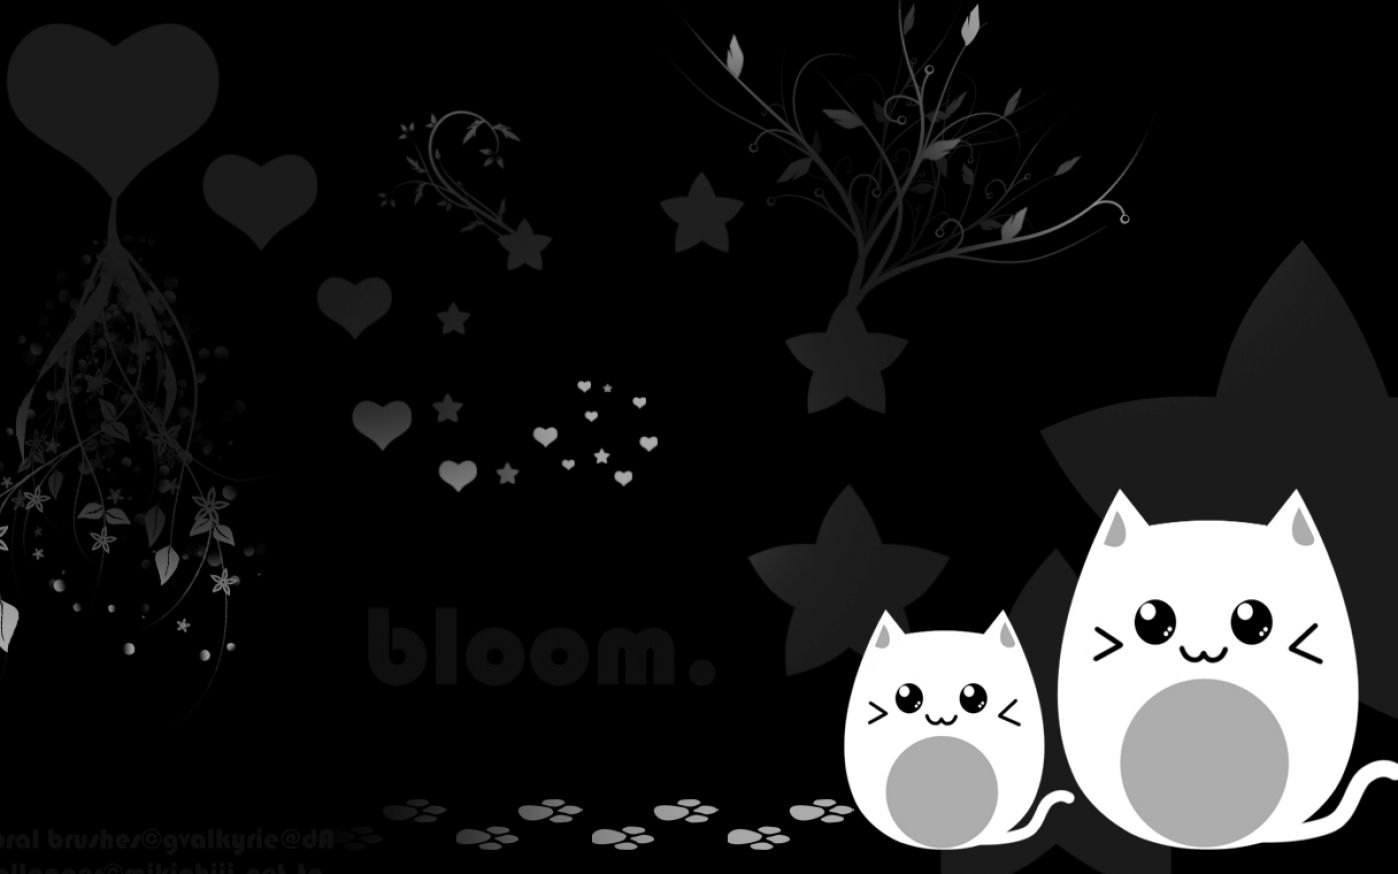 Cute black and white wallpaper pictures 1